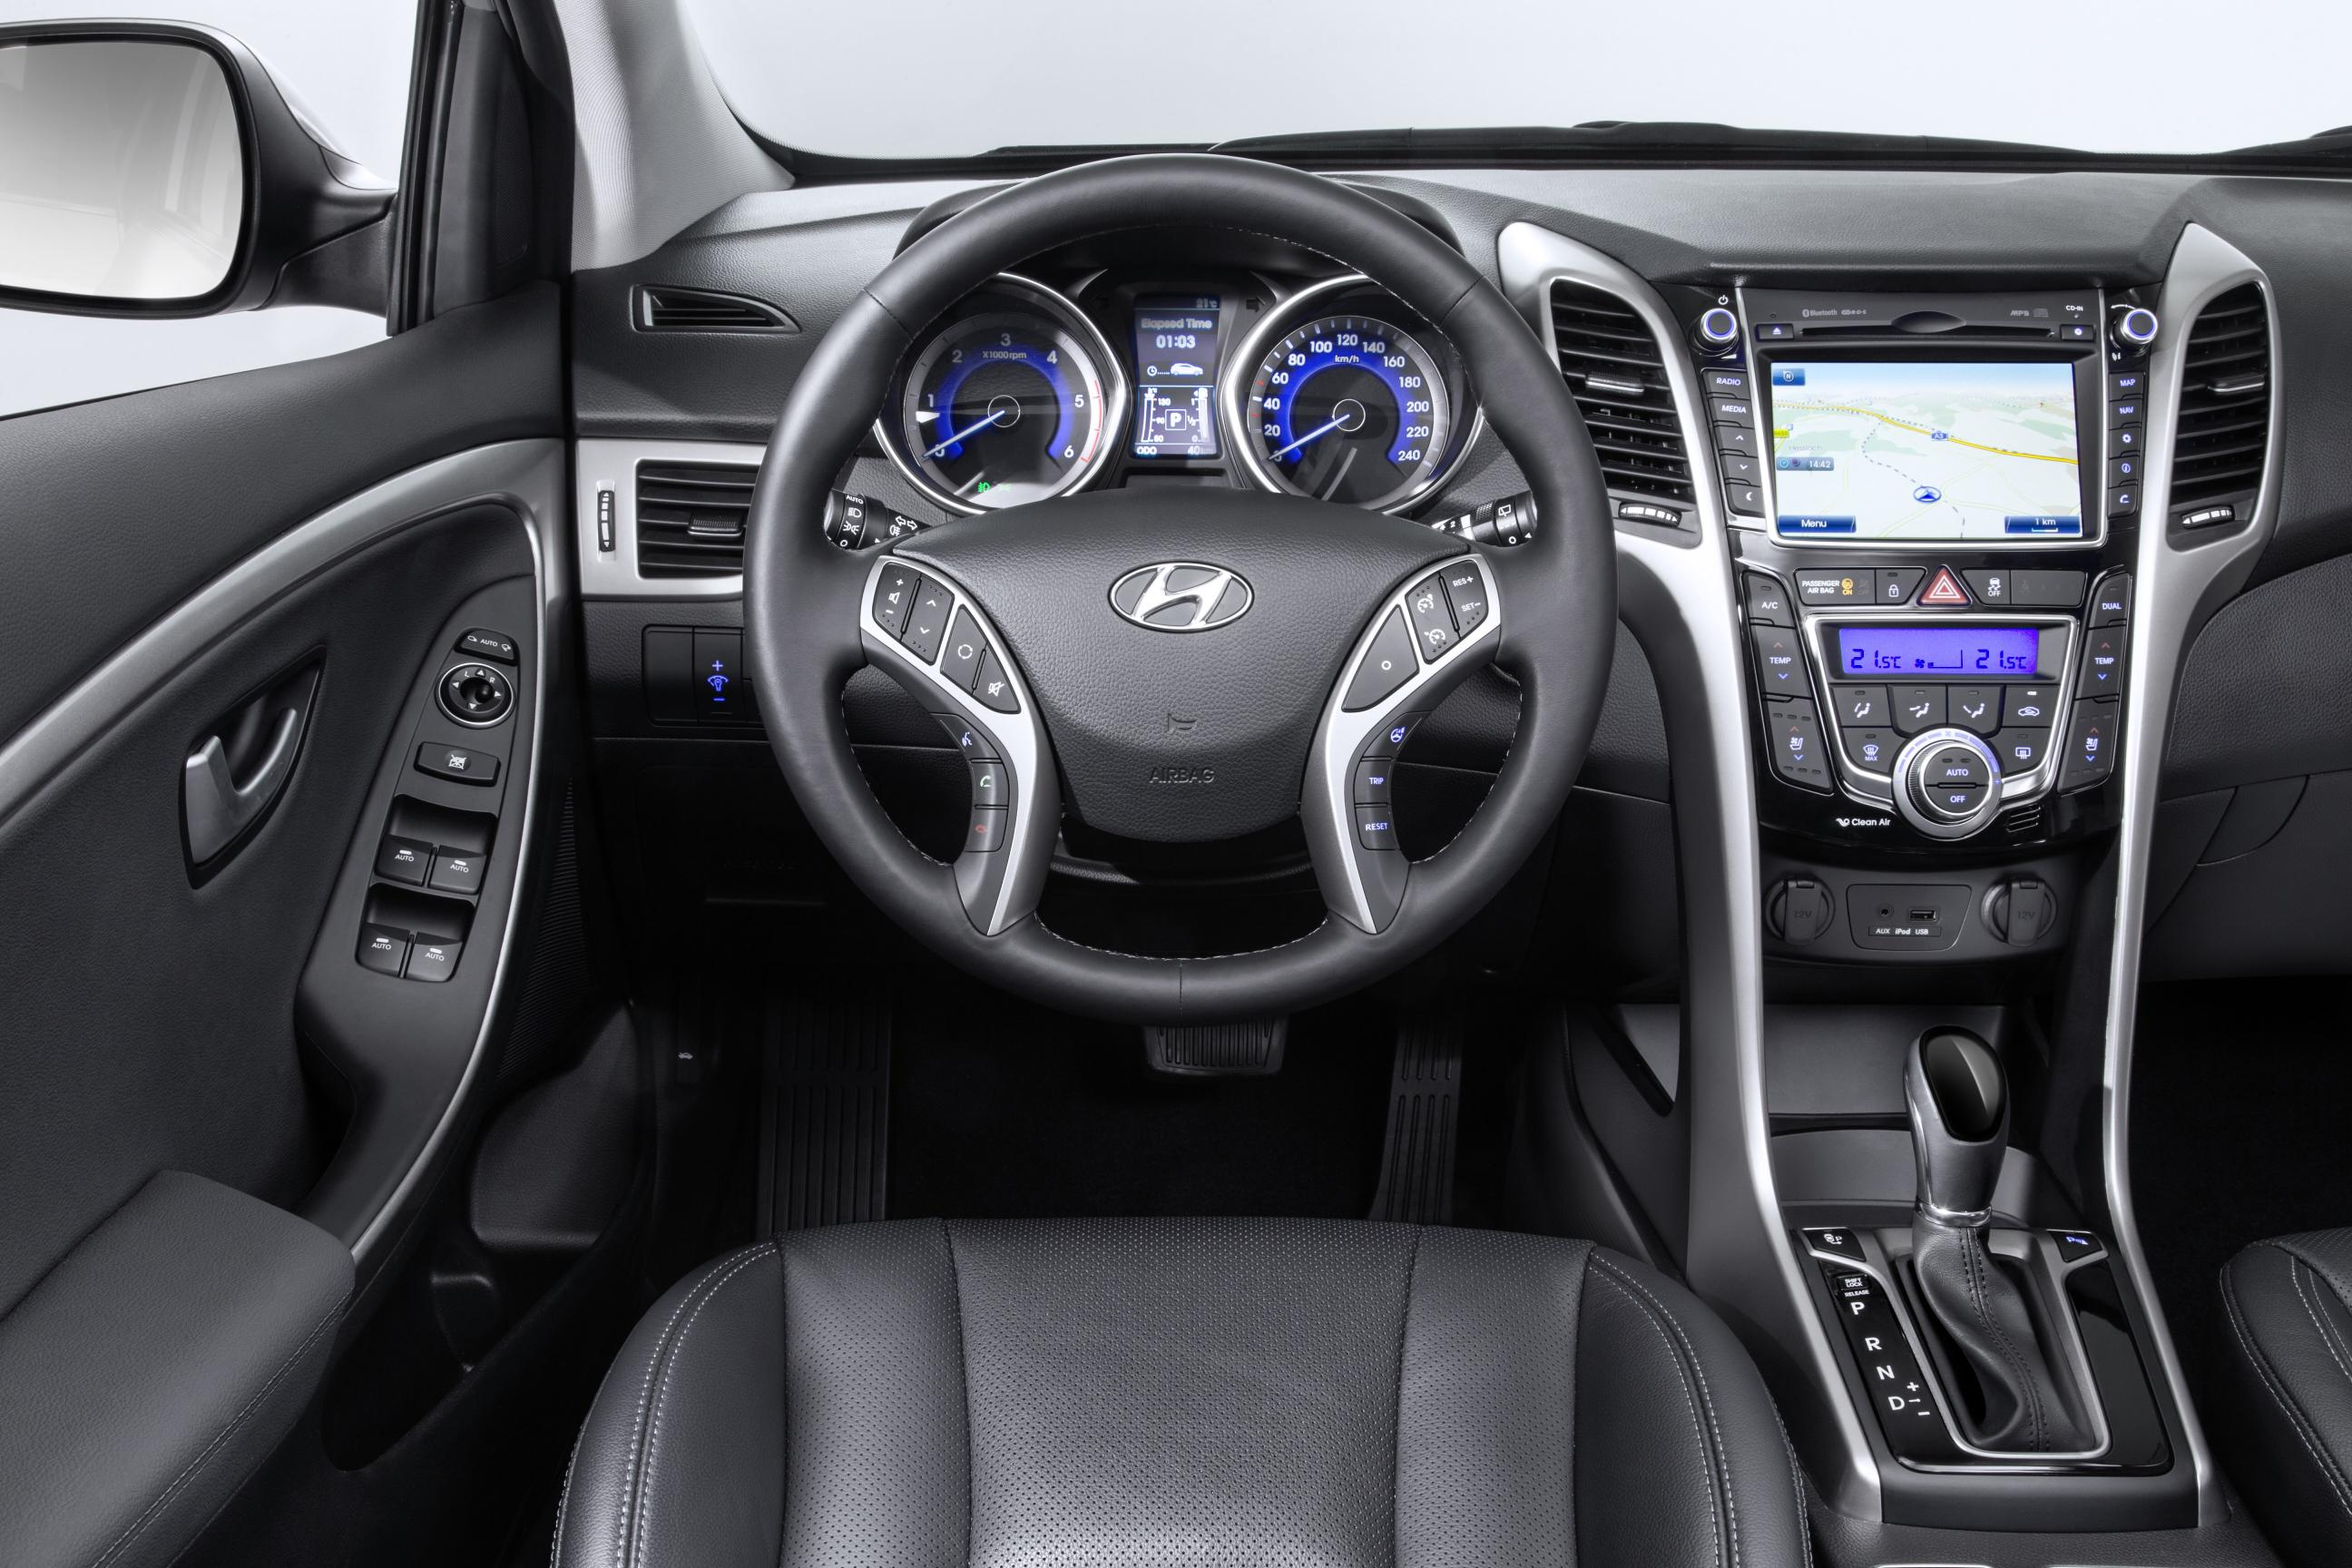 Hyundai i30 Facelift, Warm Hatch and New Dual-Clutch Gearbox